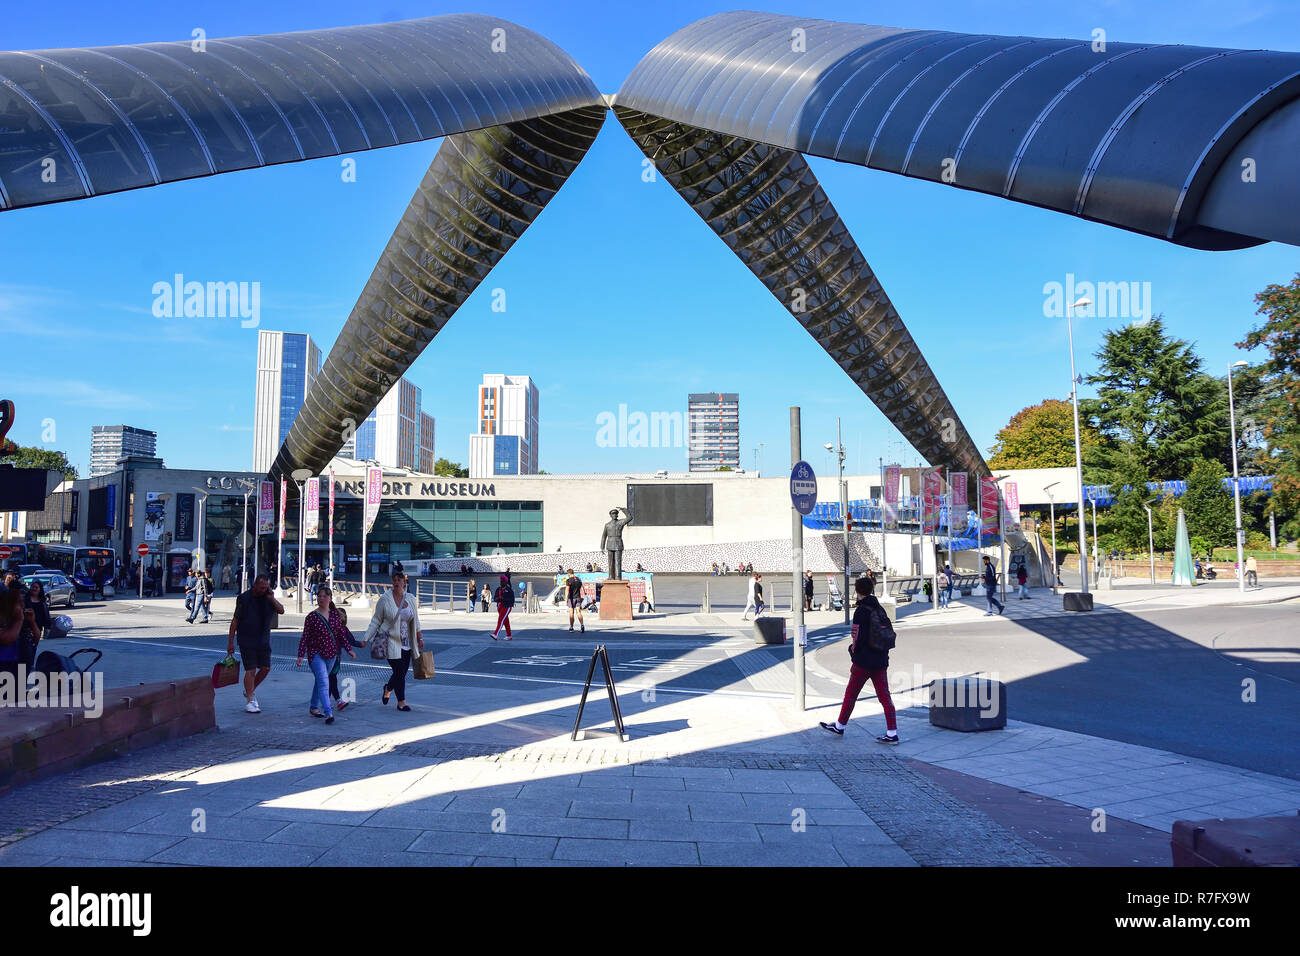 The 'Whittle Arch' and Coventry Transport Museum, Hales Street. Coventry, West Midlands, England, United Kingdom - Stock Image